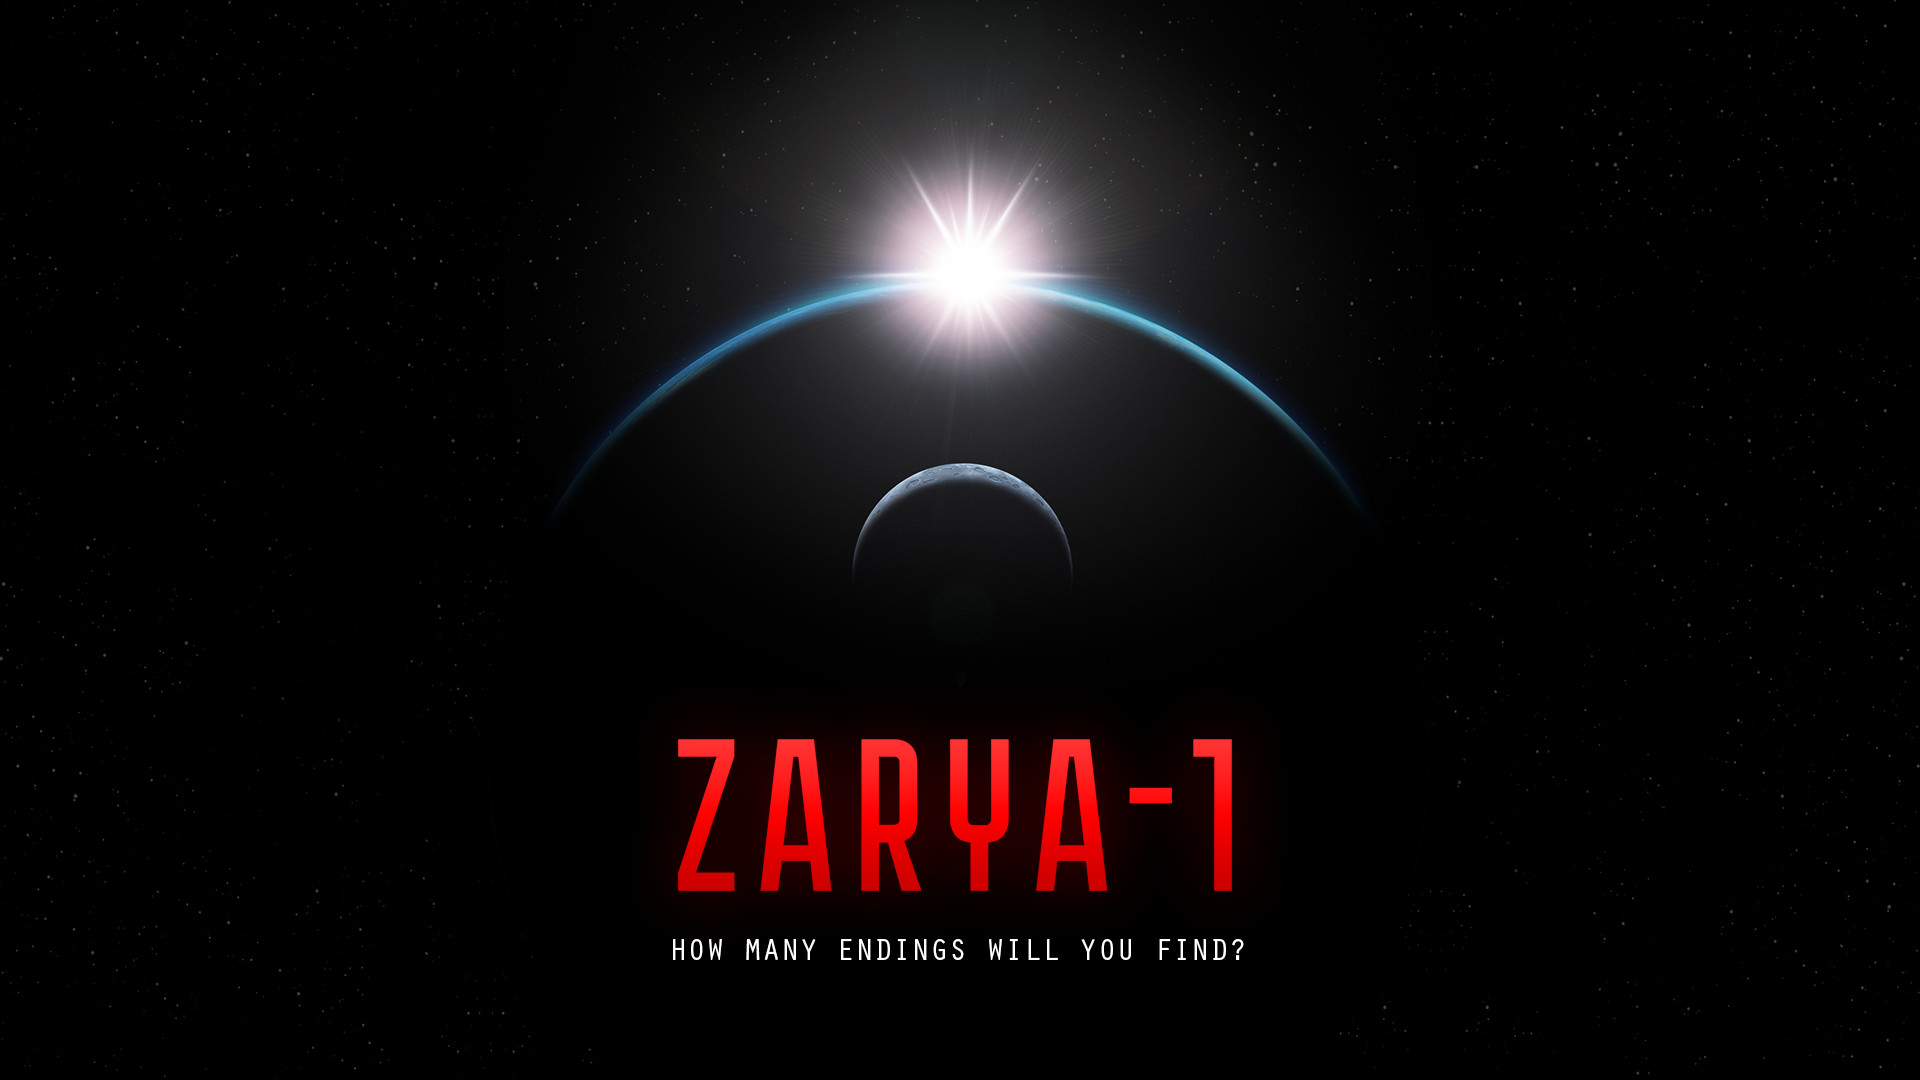 #Zarya - 1: Mystery on the Moon